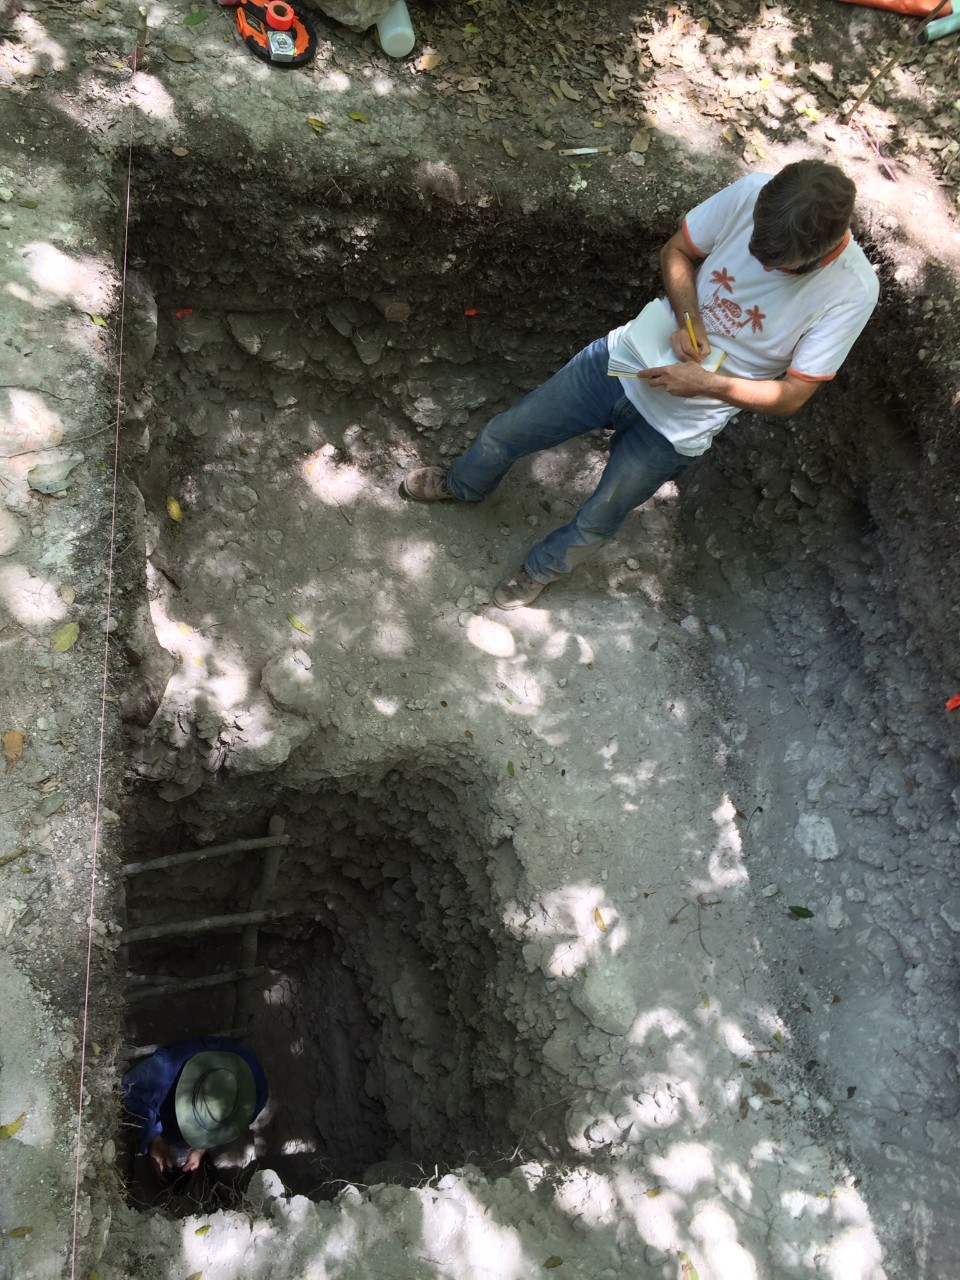 UC student Jeff Brewer stands above UC geography professor Nicholas Dunning who works at an archaeological site in Mexico's Yucatan Peninsula. (Image: Nicholas Dunning)